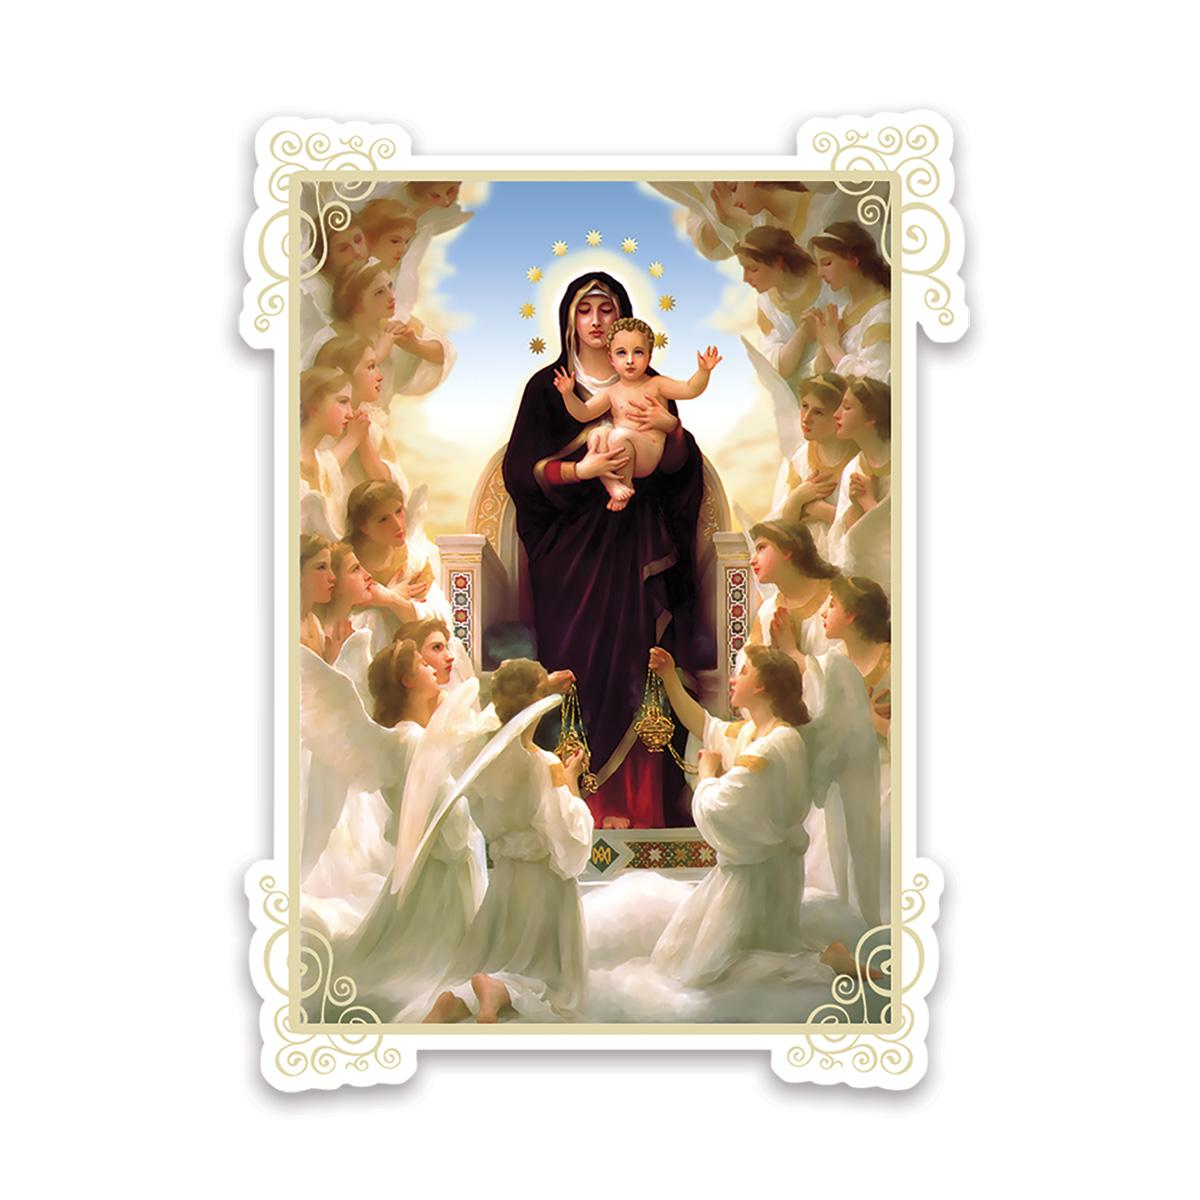 Our Lady of the Angels : Gift Sticker Catholic Religious Virgin Mary